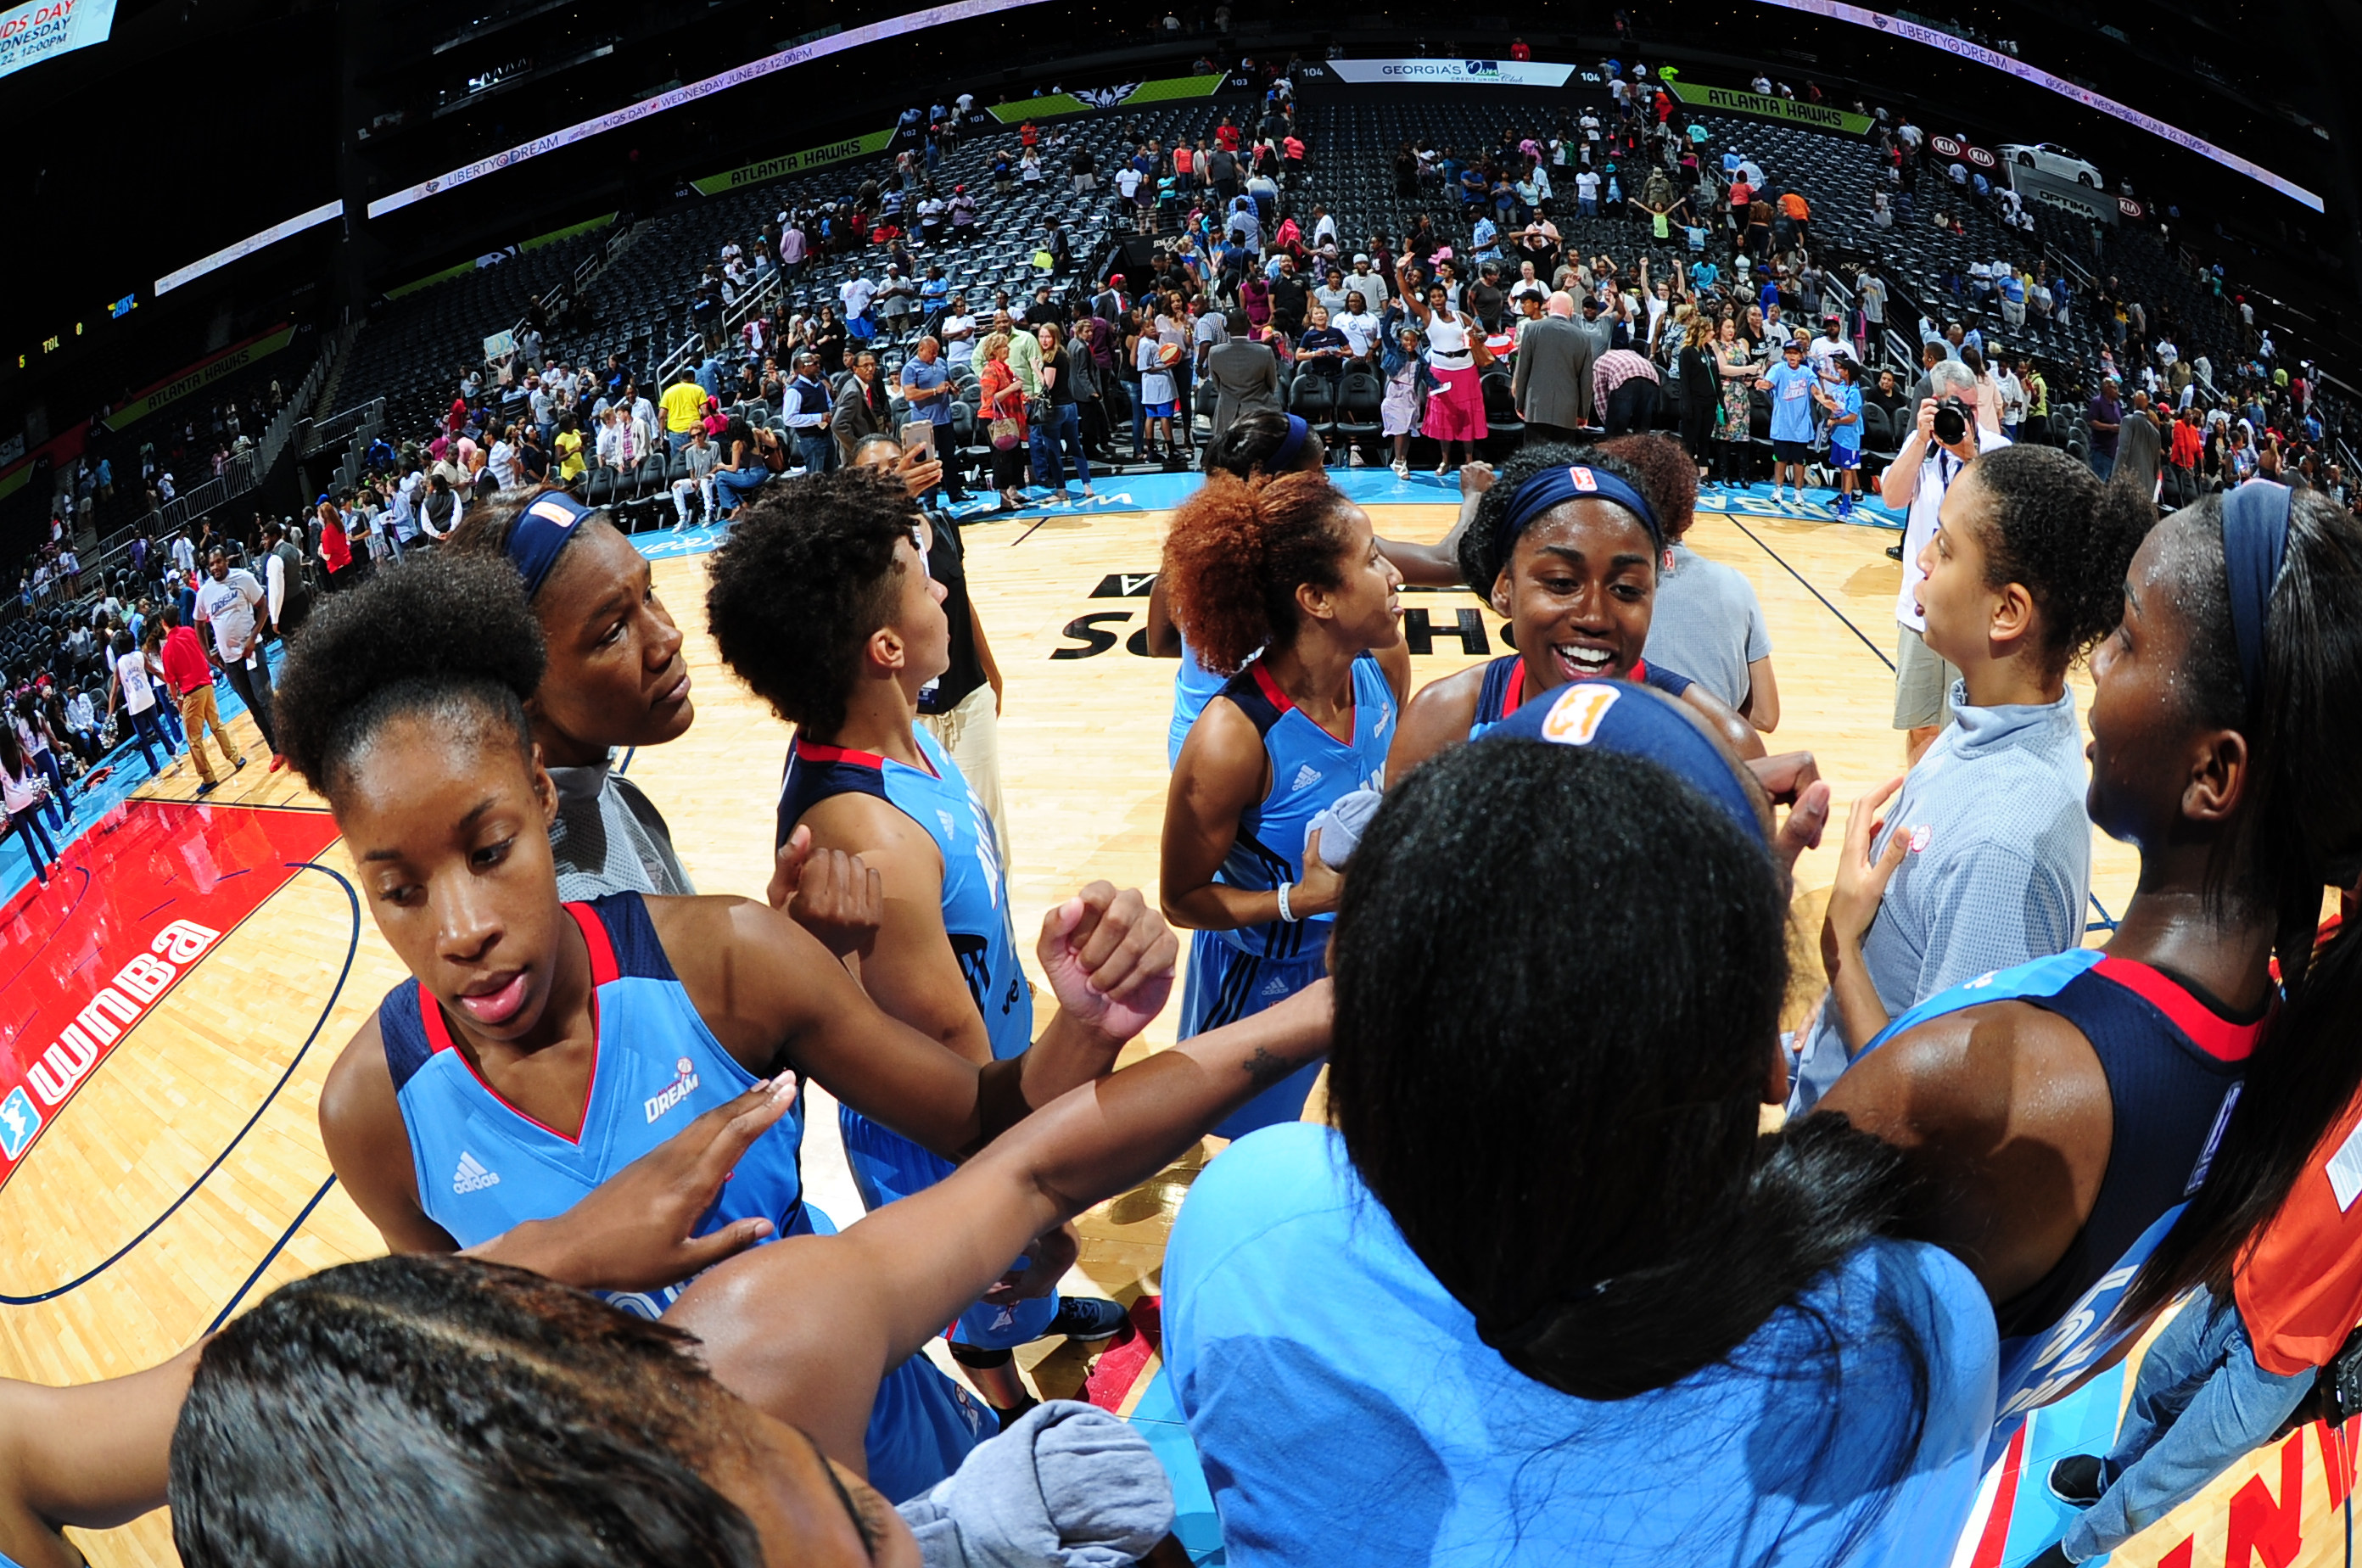 ATLANTA, GA - JUNE 17: The Atlanta Dream celebrate after the game against the Chicago Sky on June 17, 2016 at Philips Arena in Atlanta, Georgia. NOTE TO USER: User expressly acknowledges and agrees that, by downloading and/or using this Photograph, user is consenting to the terms and conditions of the Getty Images License Agreement. Mandatory Copyright Notice: Copyright 2016 NBAE (Photo by Scott Cunningham/NBAE via Getty Images)